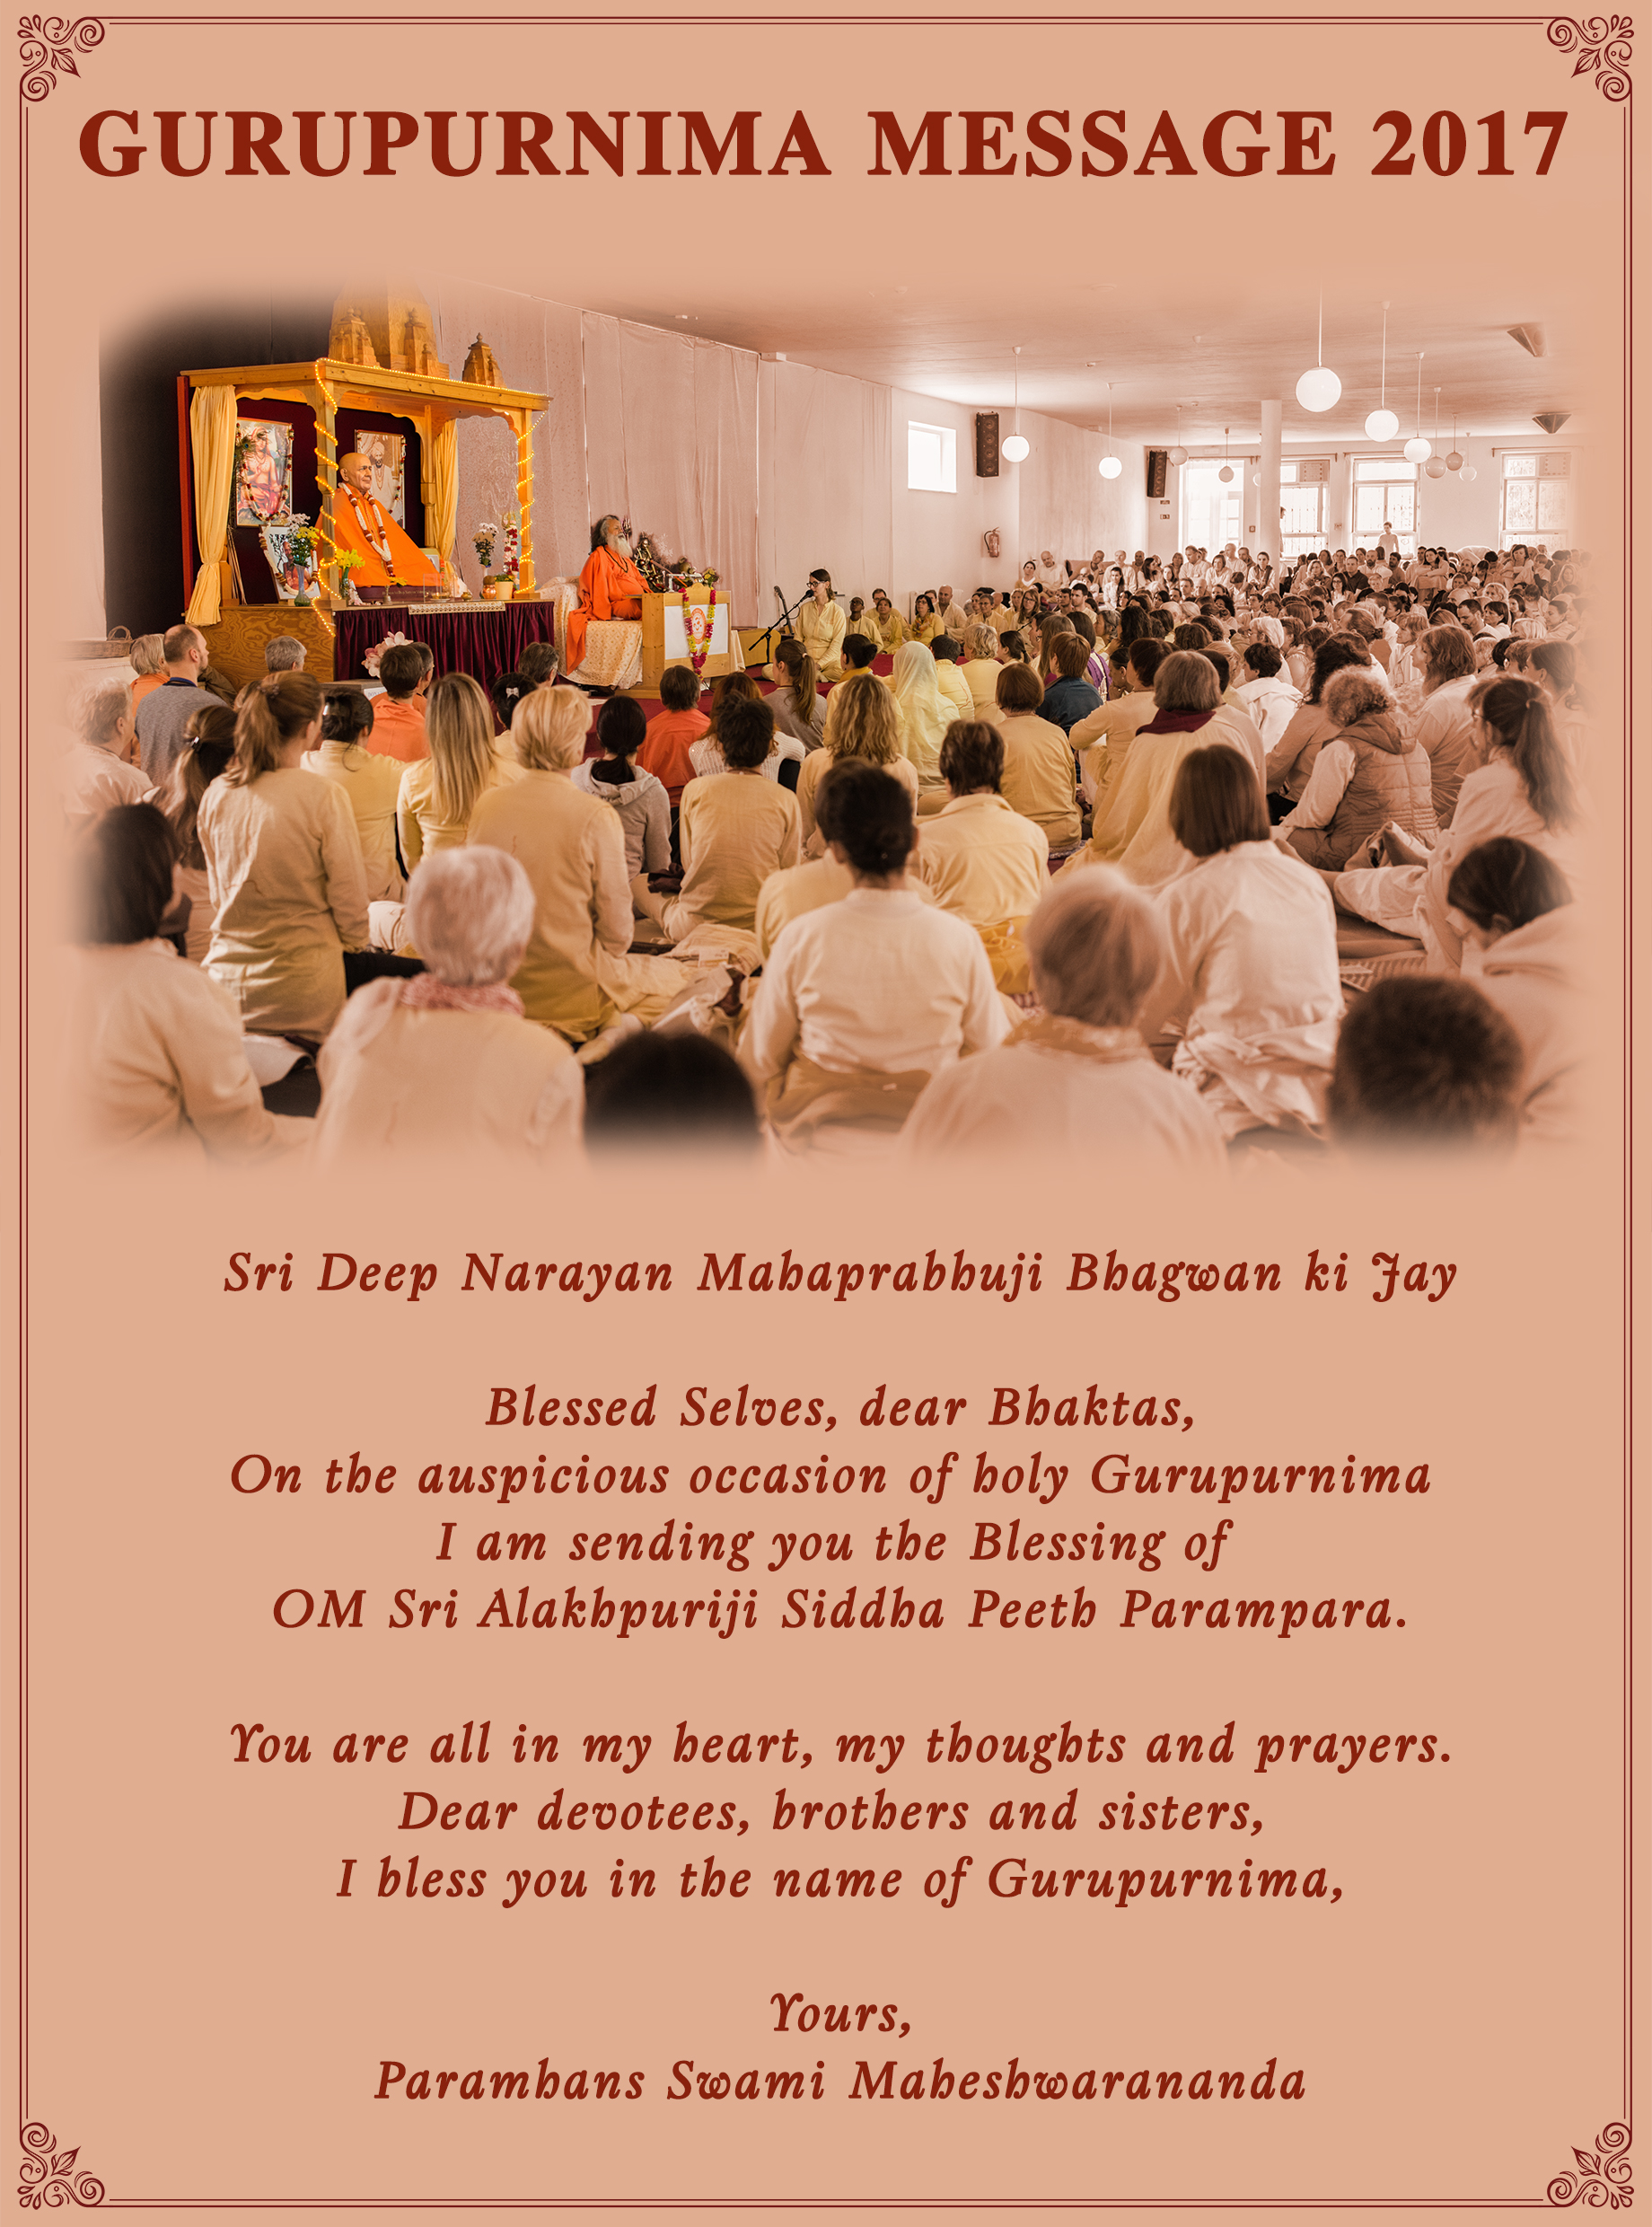 Gurupurnima message 2017